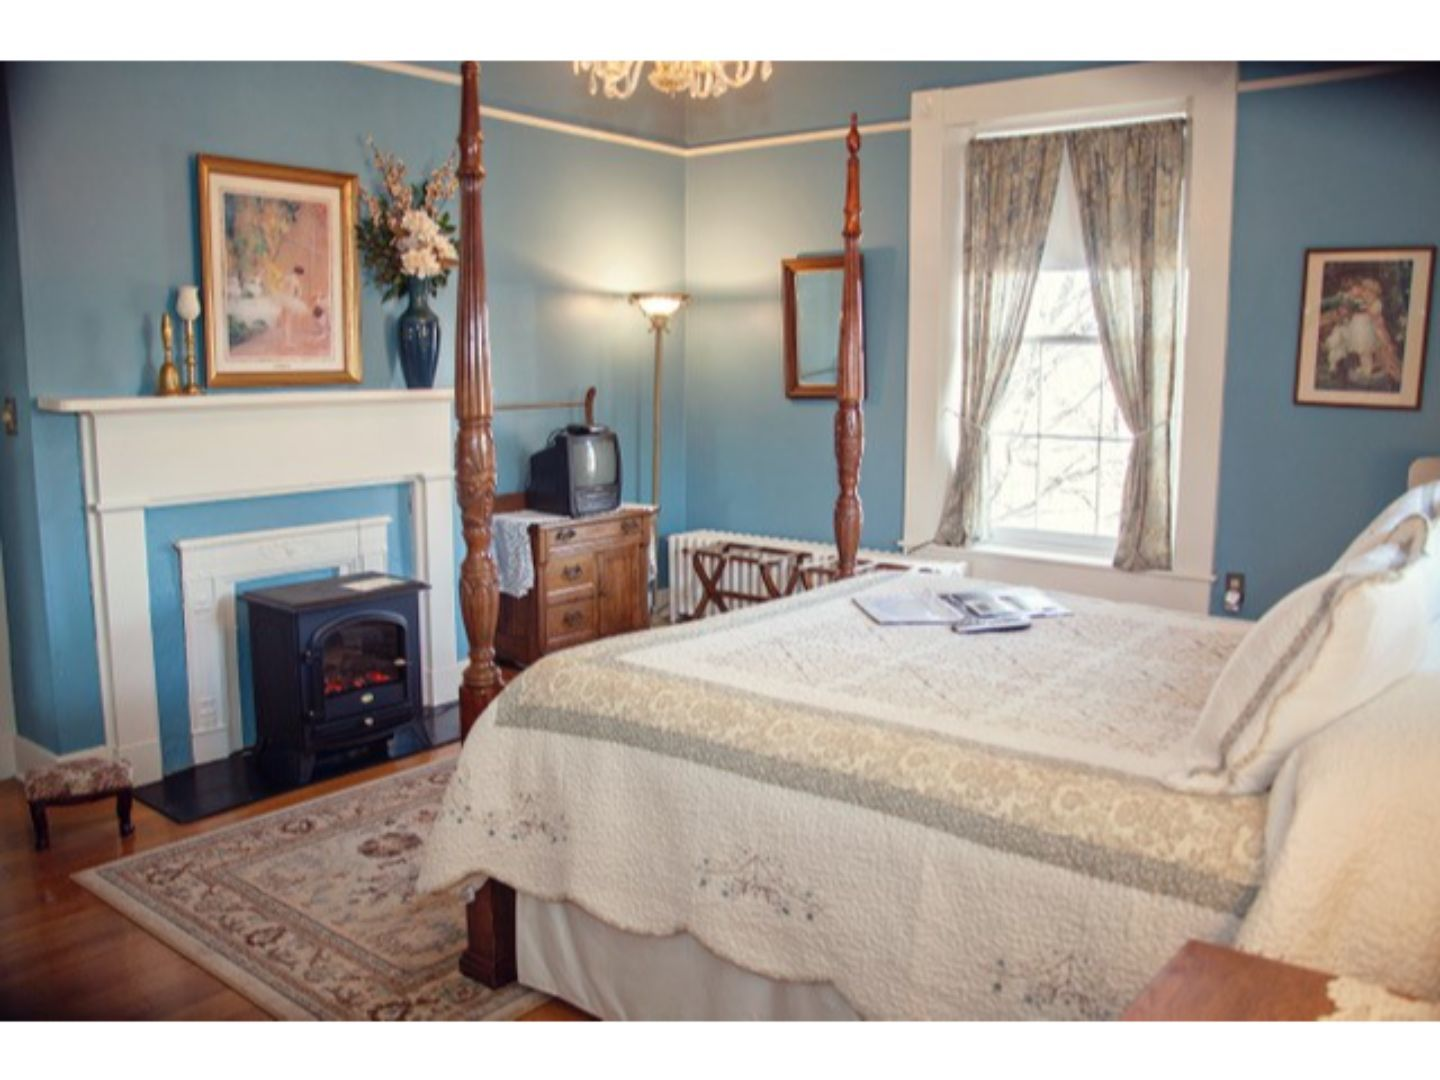 A bedroom with a bed and desk in a room at The Carriage Inn Bed and Breakfast.